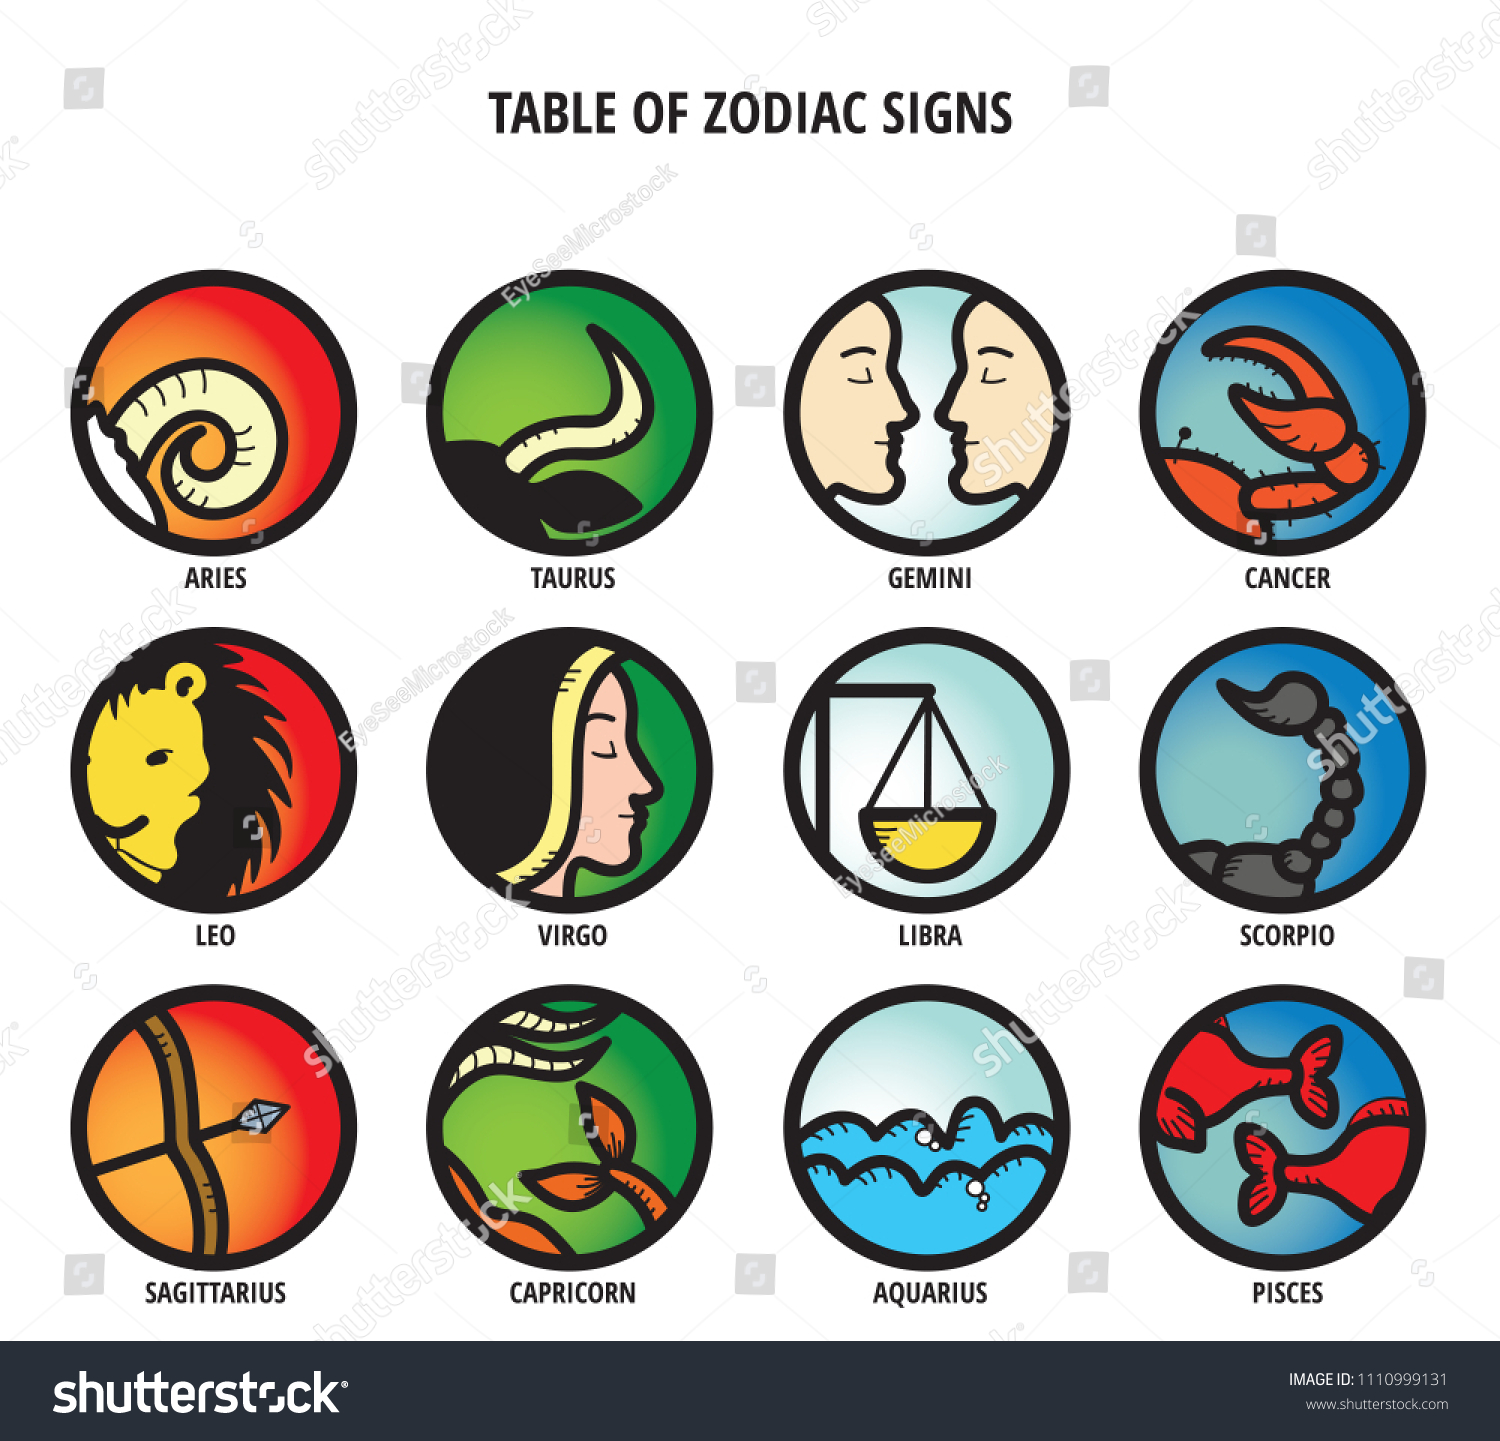 Zodiac Signs Table Zodiac Signs Horoscope Icons Color Stock Vector Royalty